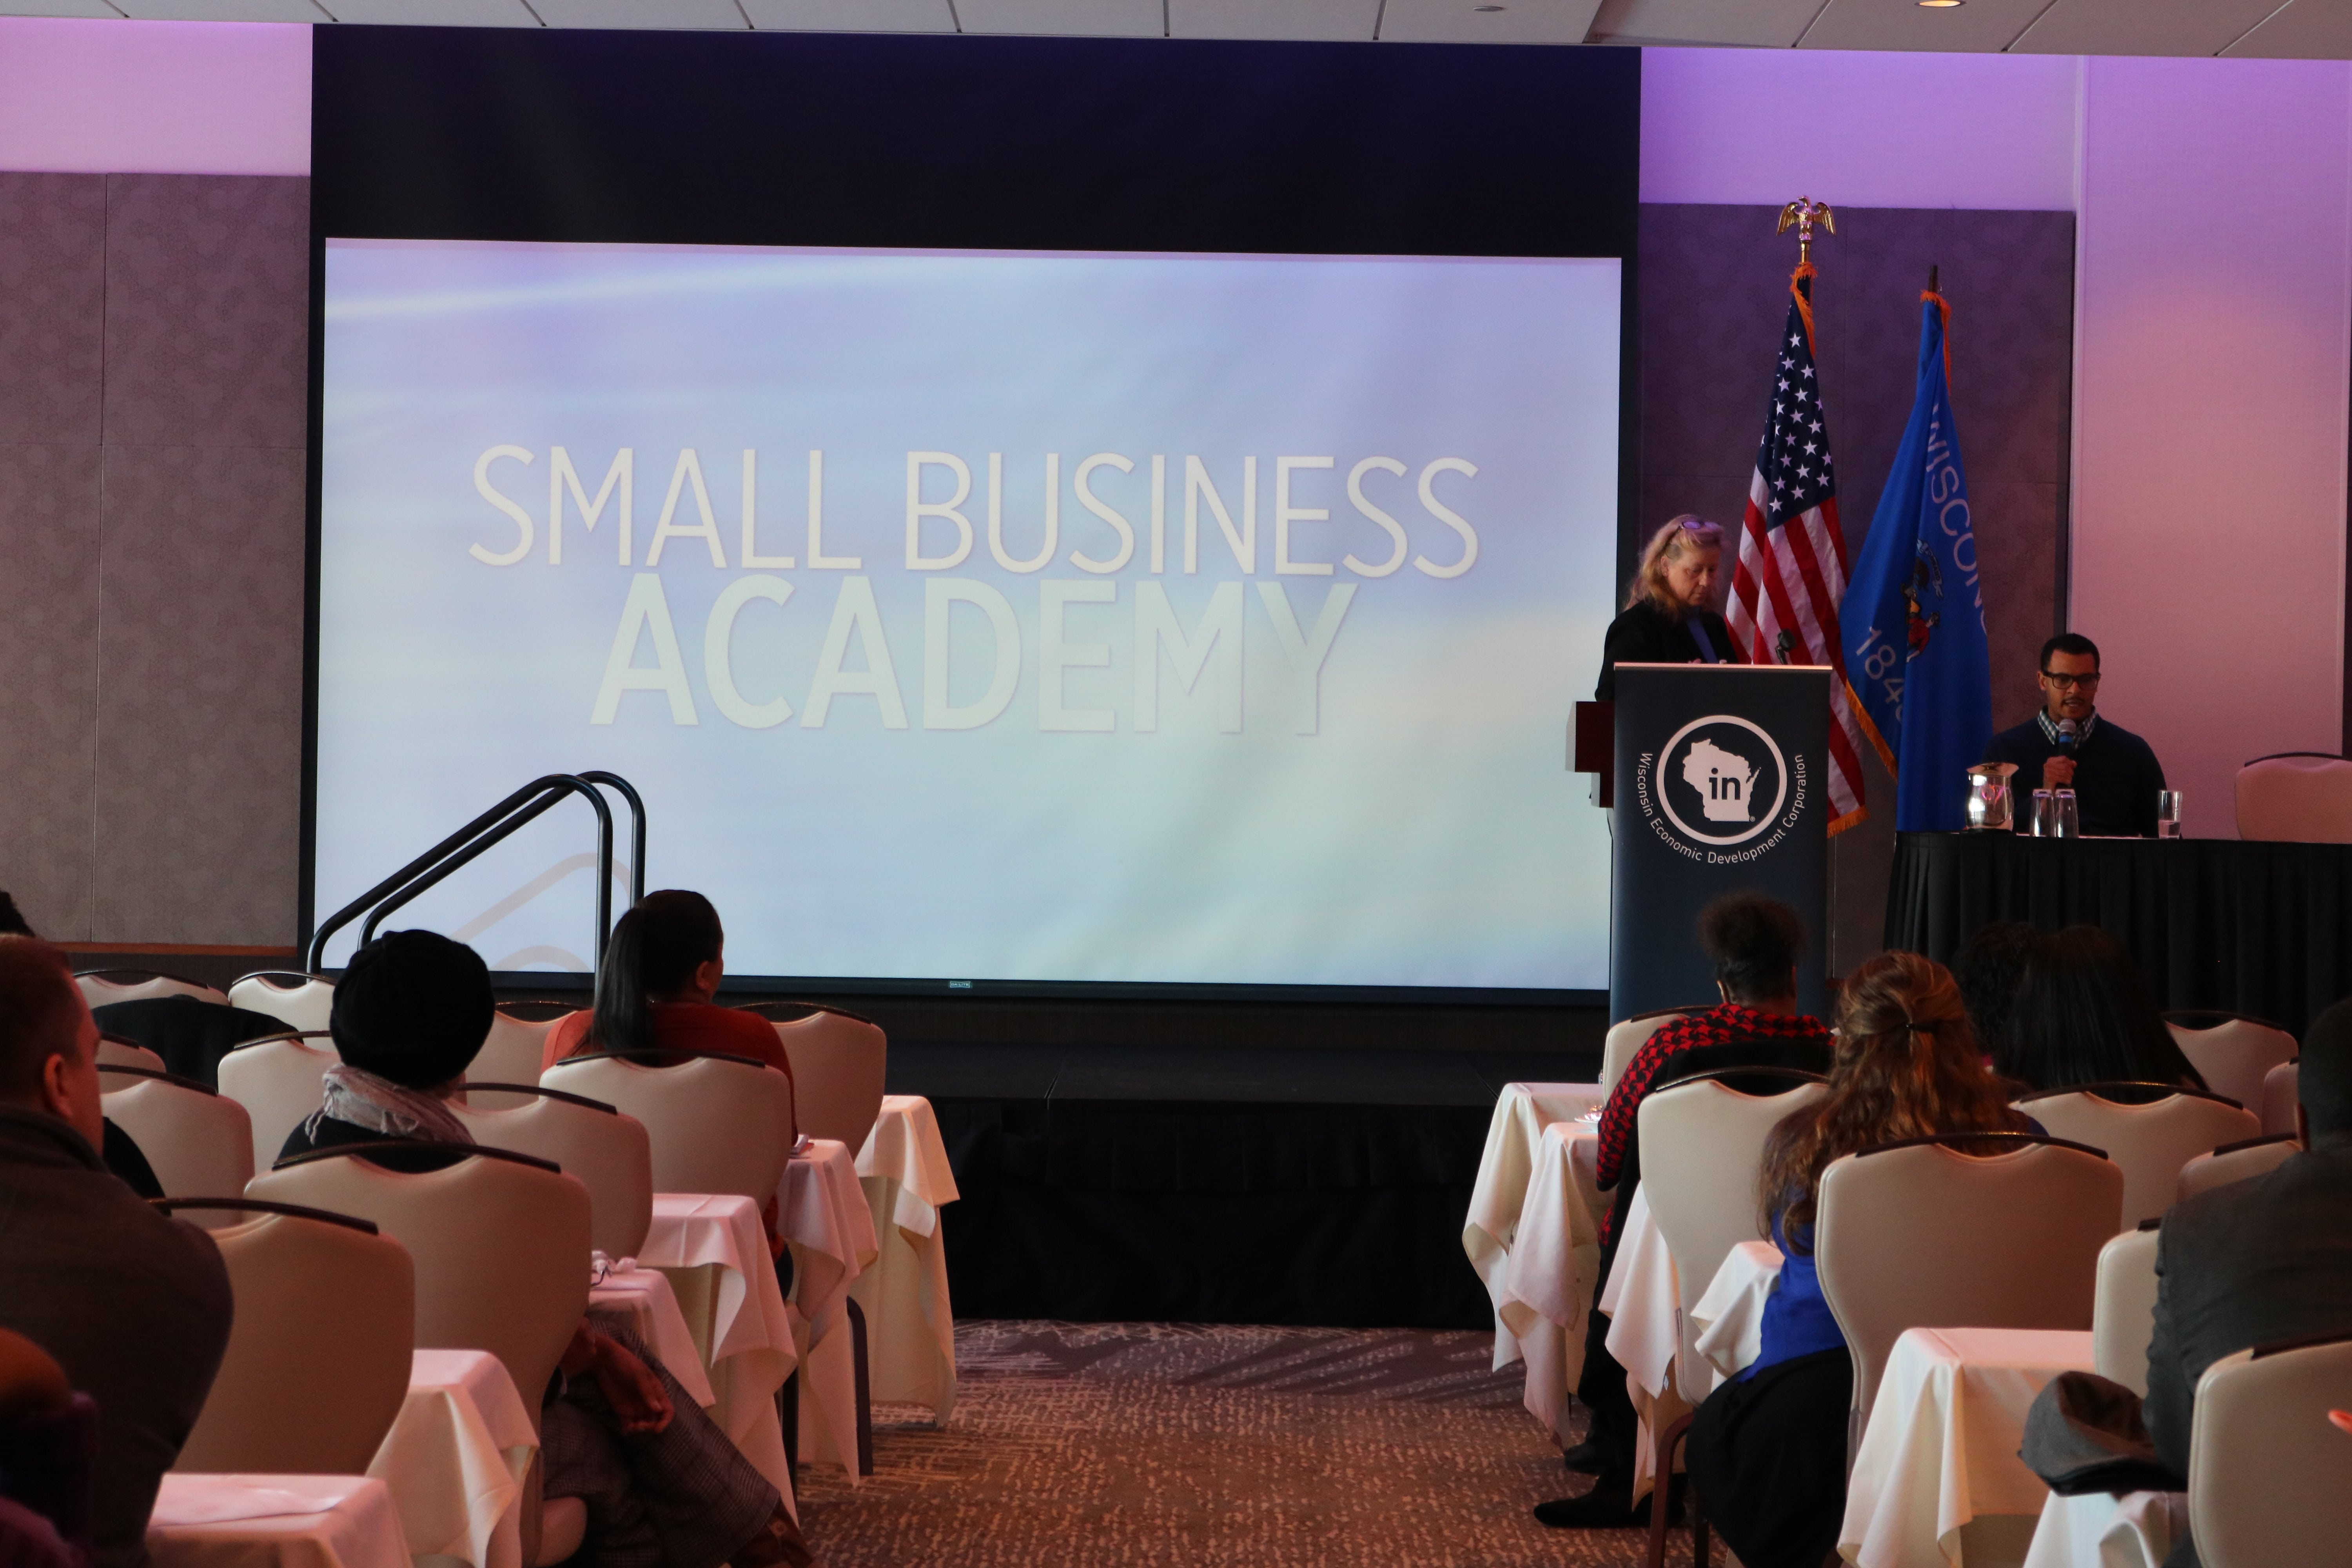 During this morning's Small Business Academy, Jeremy Taylor of Milwaukee spoke about the experience of starting his Bourbon on Wheels food truck business, and Anne Hlavacka, director of the Wisconsin Small Business Development Center at UW-La Crosse, spoke about the resources and assistance available for startups.